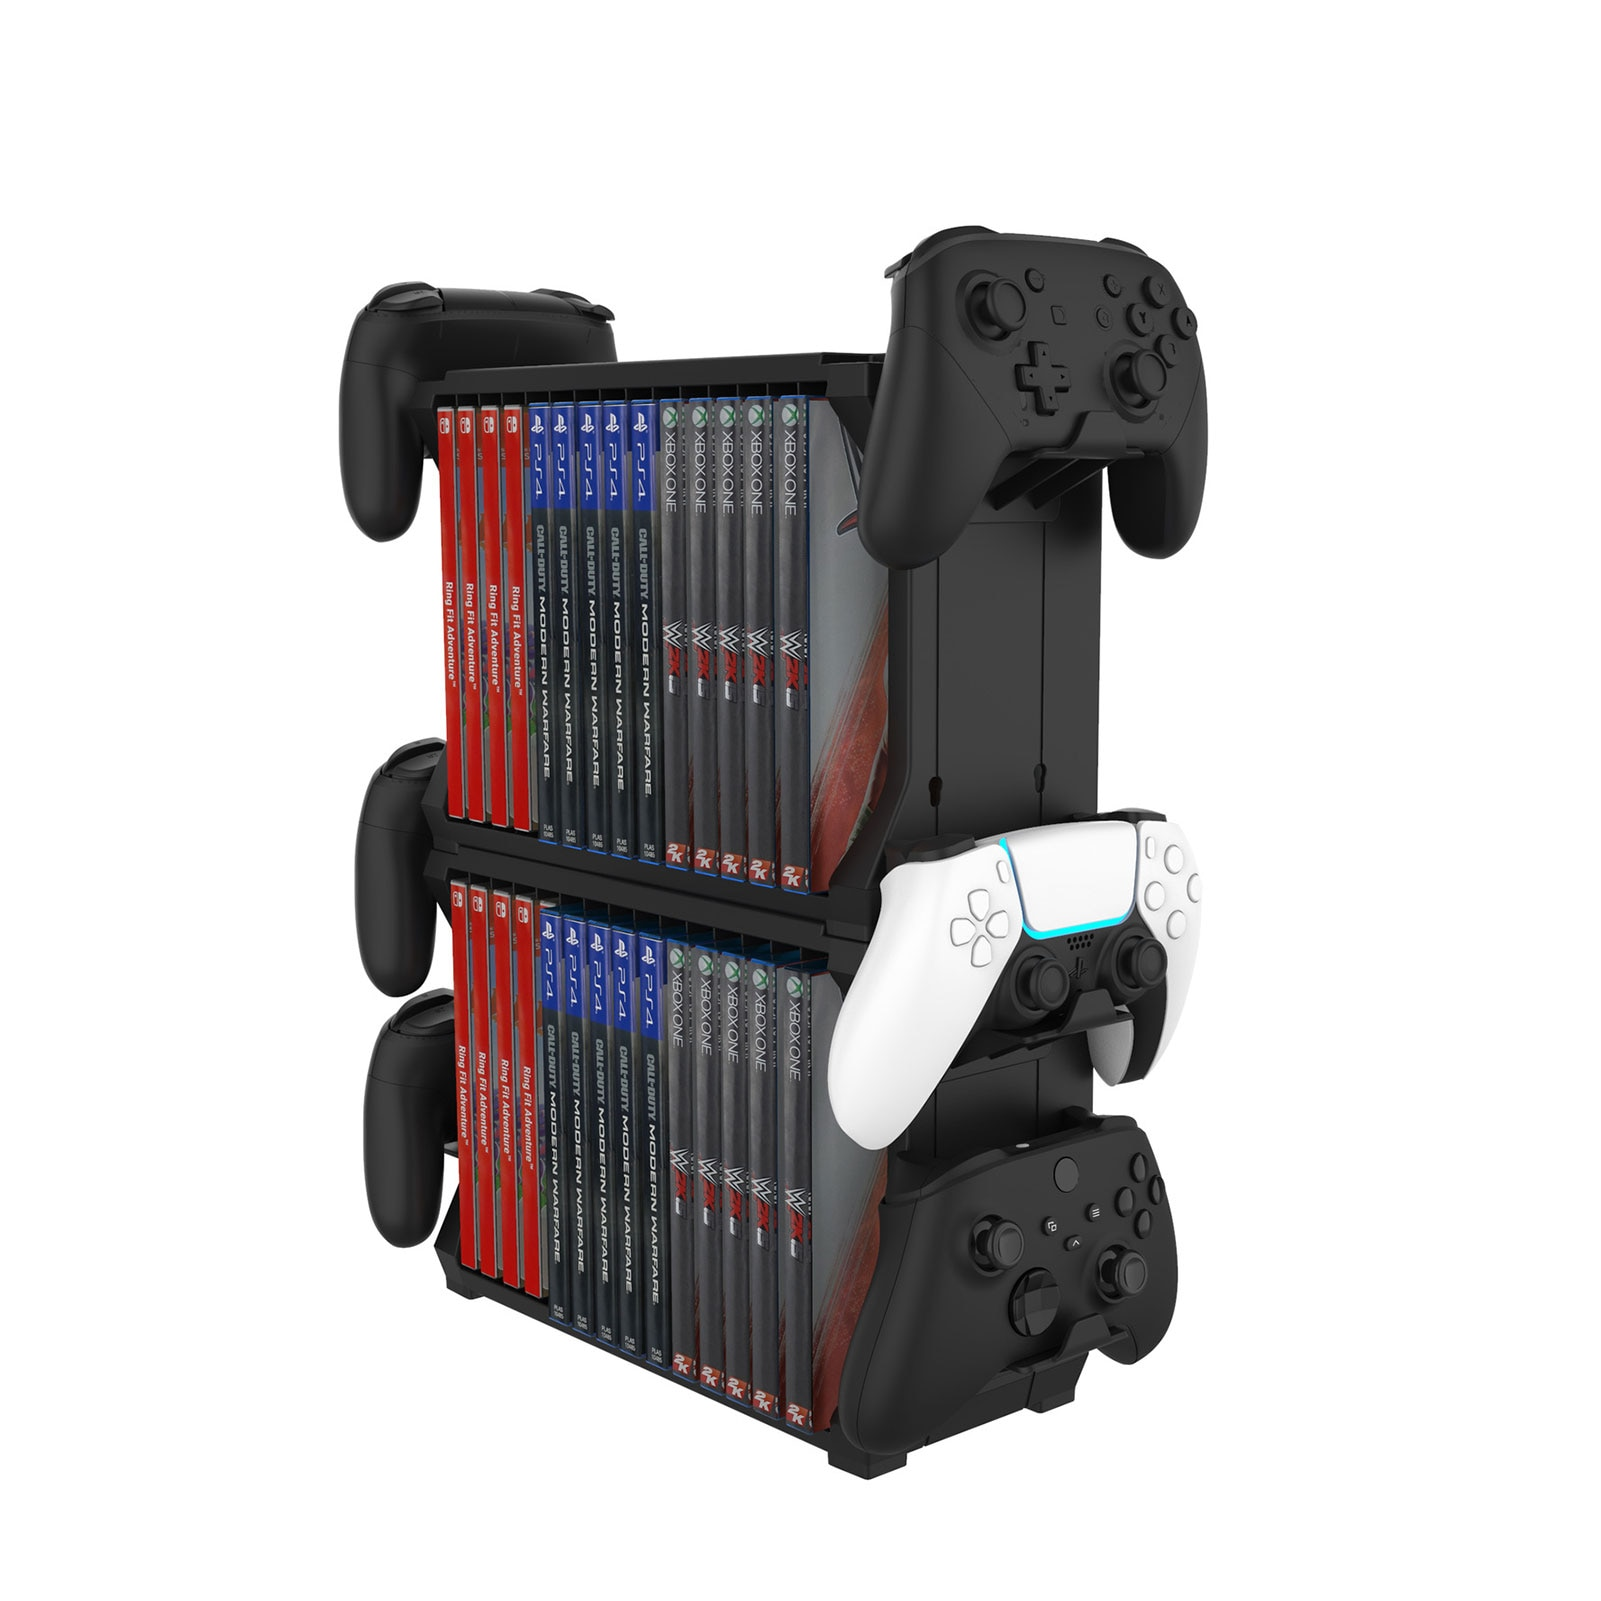 Storage Bracket Holder Tower Carrying Stand Display Shelf Game Accessories For PS5 Nintend Switch NS Joystick Disk Best Service